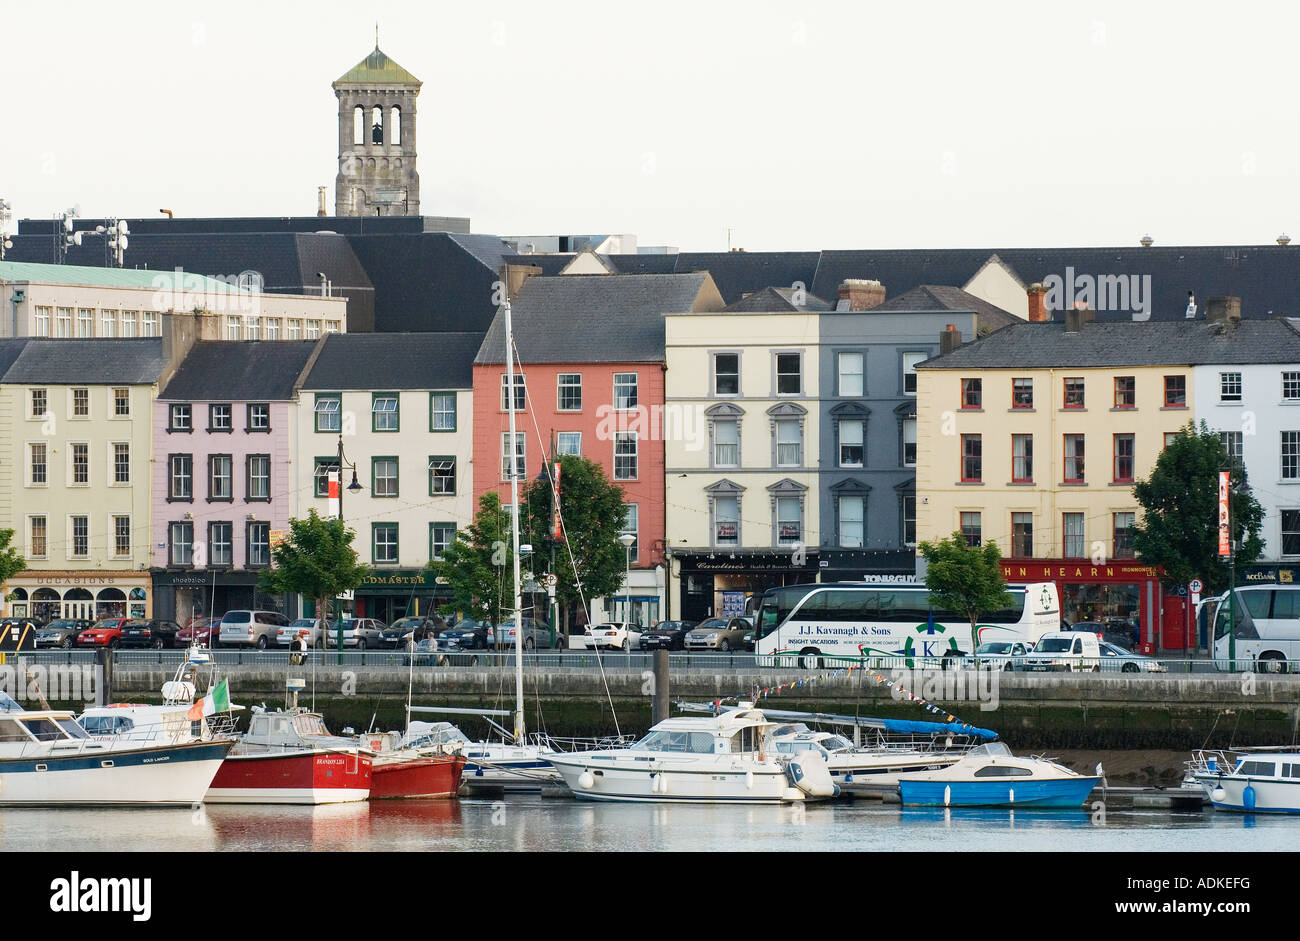 Old quayside buildings line the south bank of the River Suir in the city of Waterford, County Waterford, Ireland. - Stock Image